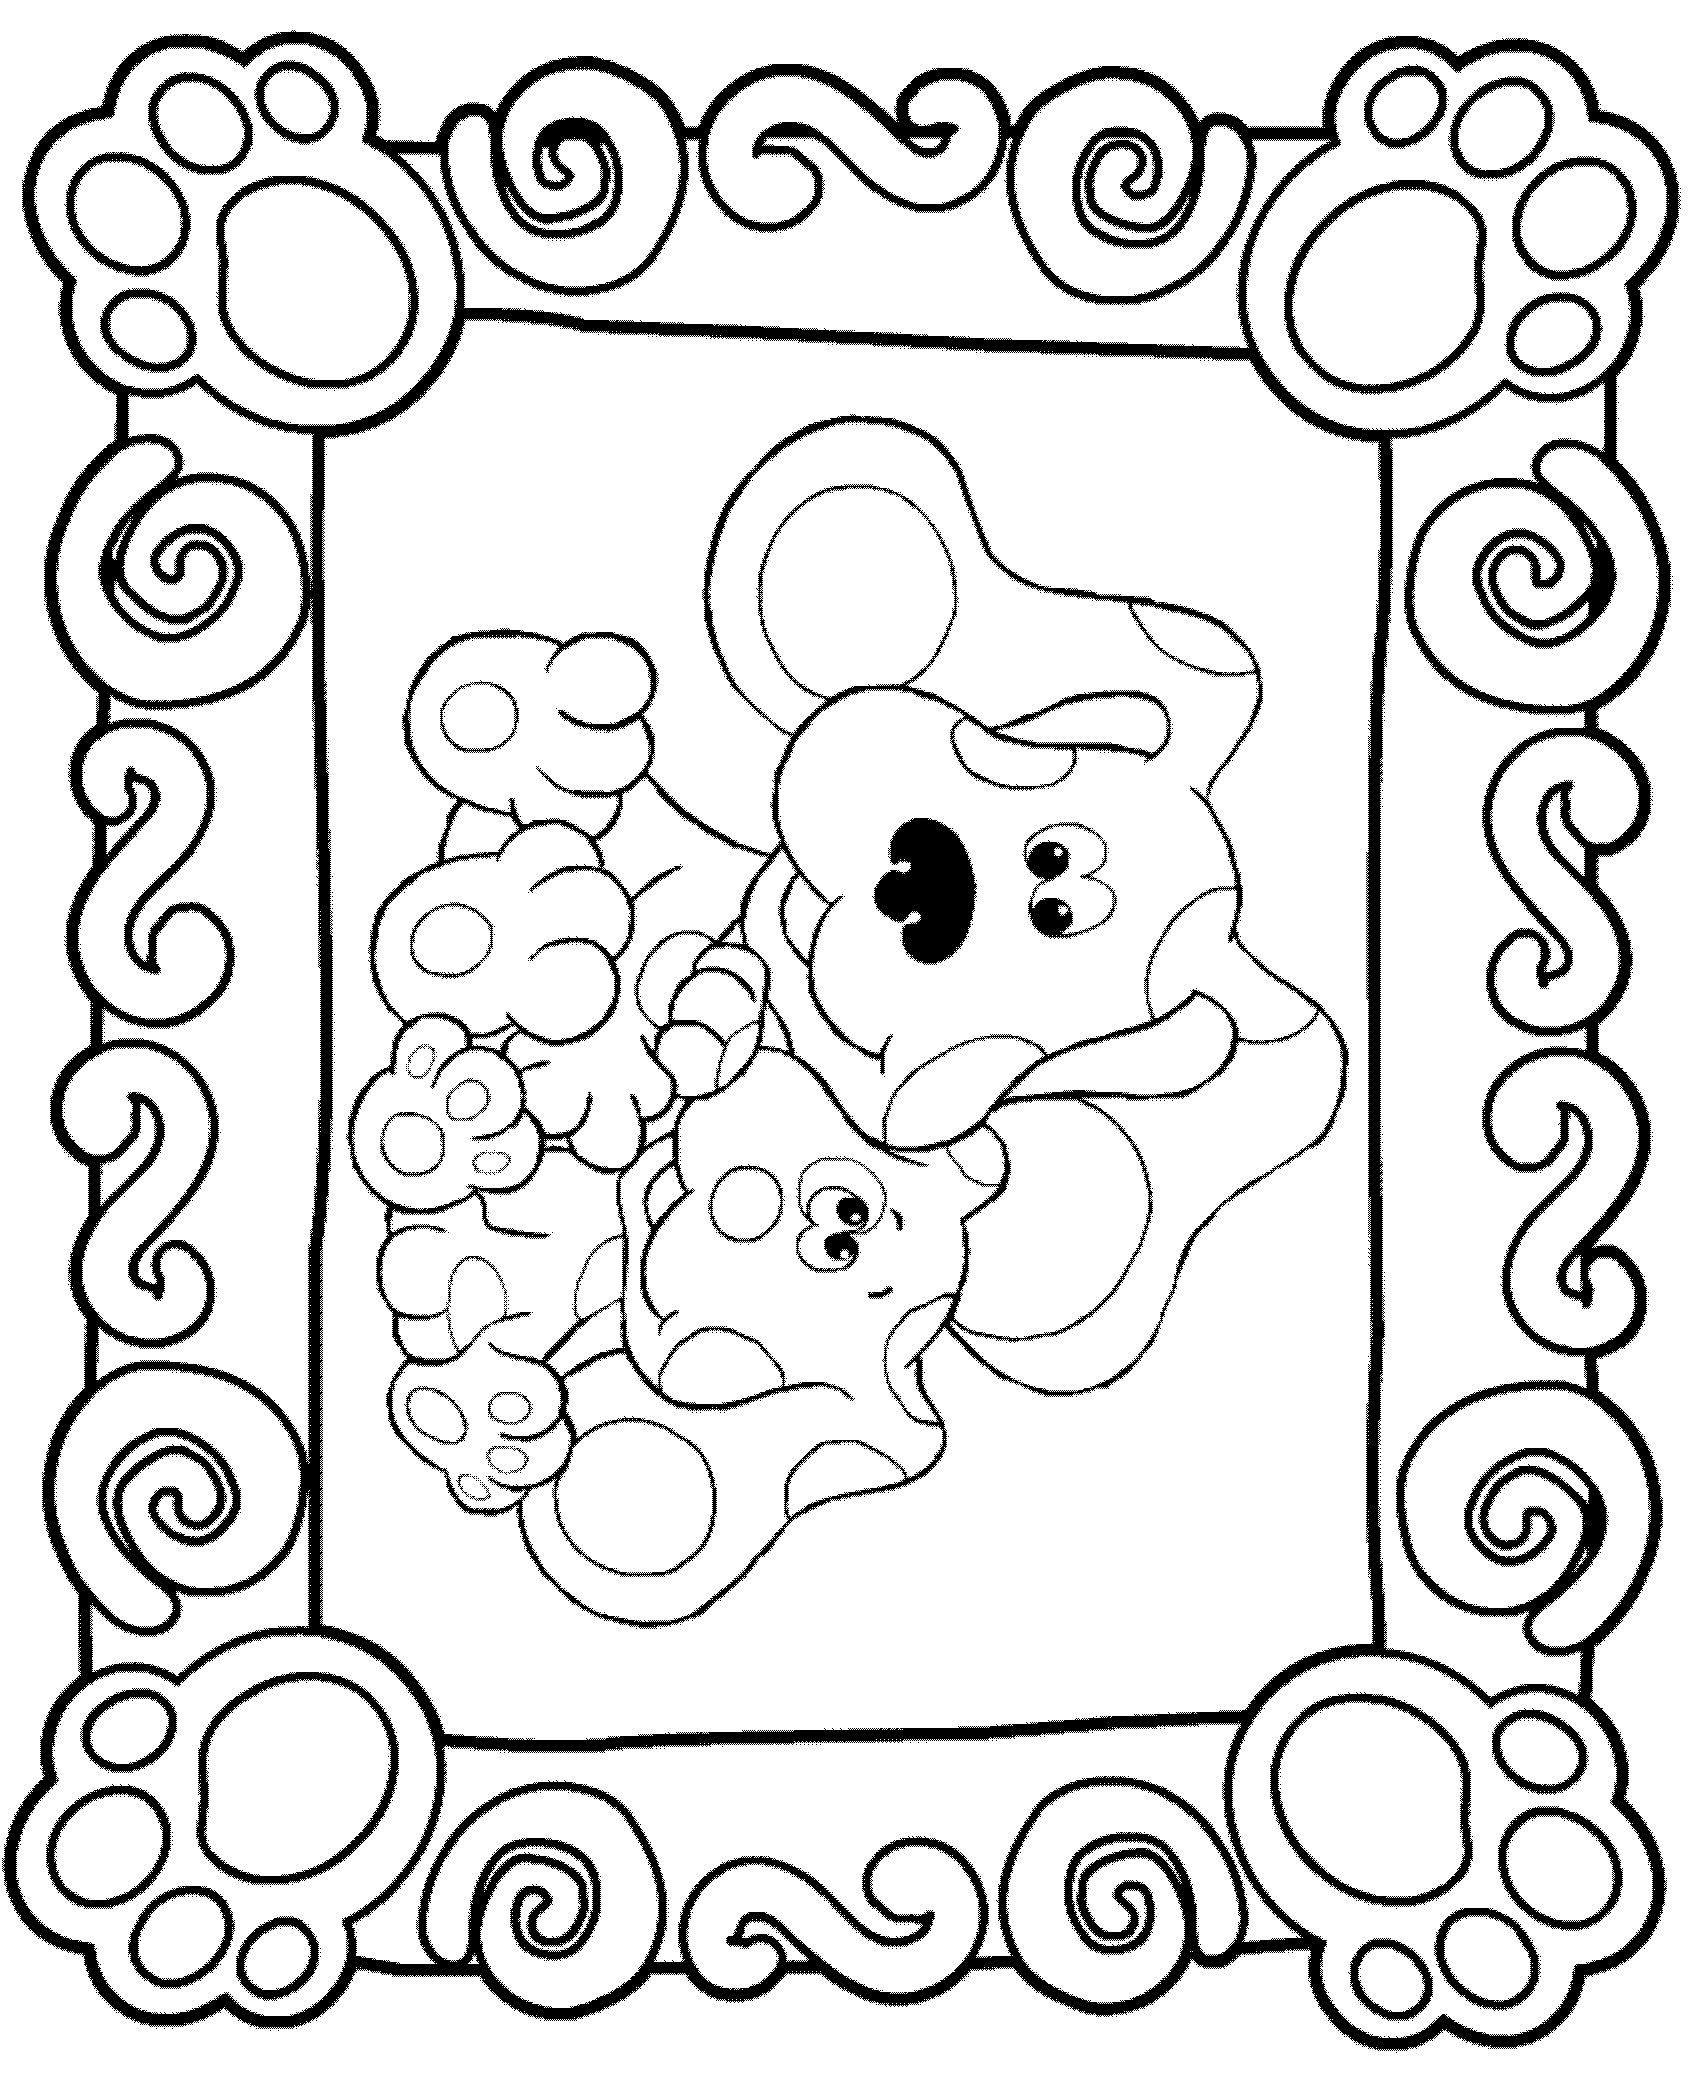 kids n fun com all coloring pages about toddlers and preschoolers